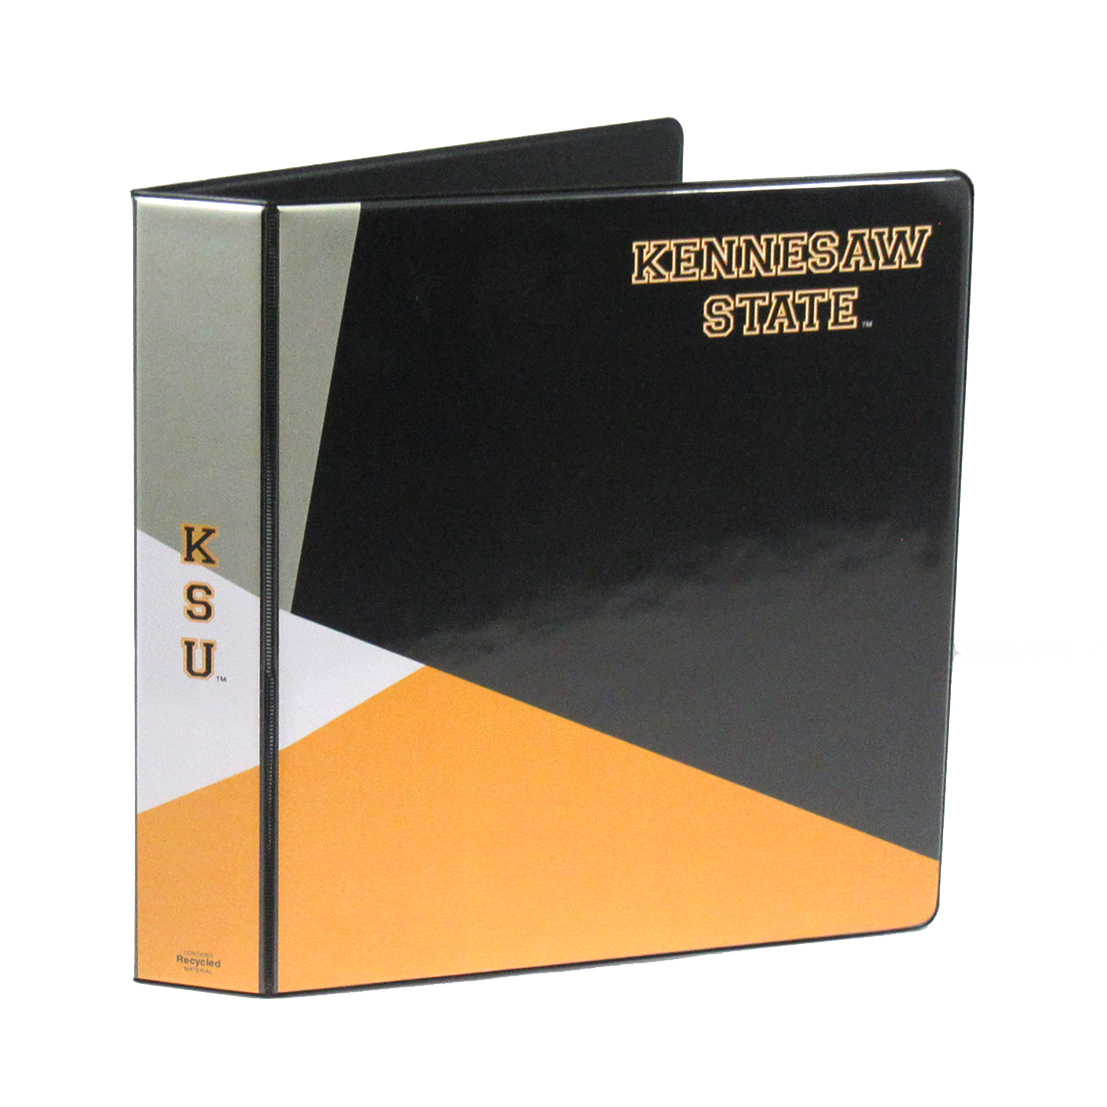 "Image For Binder 1"" KSU Geometric"